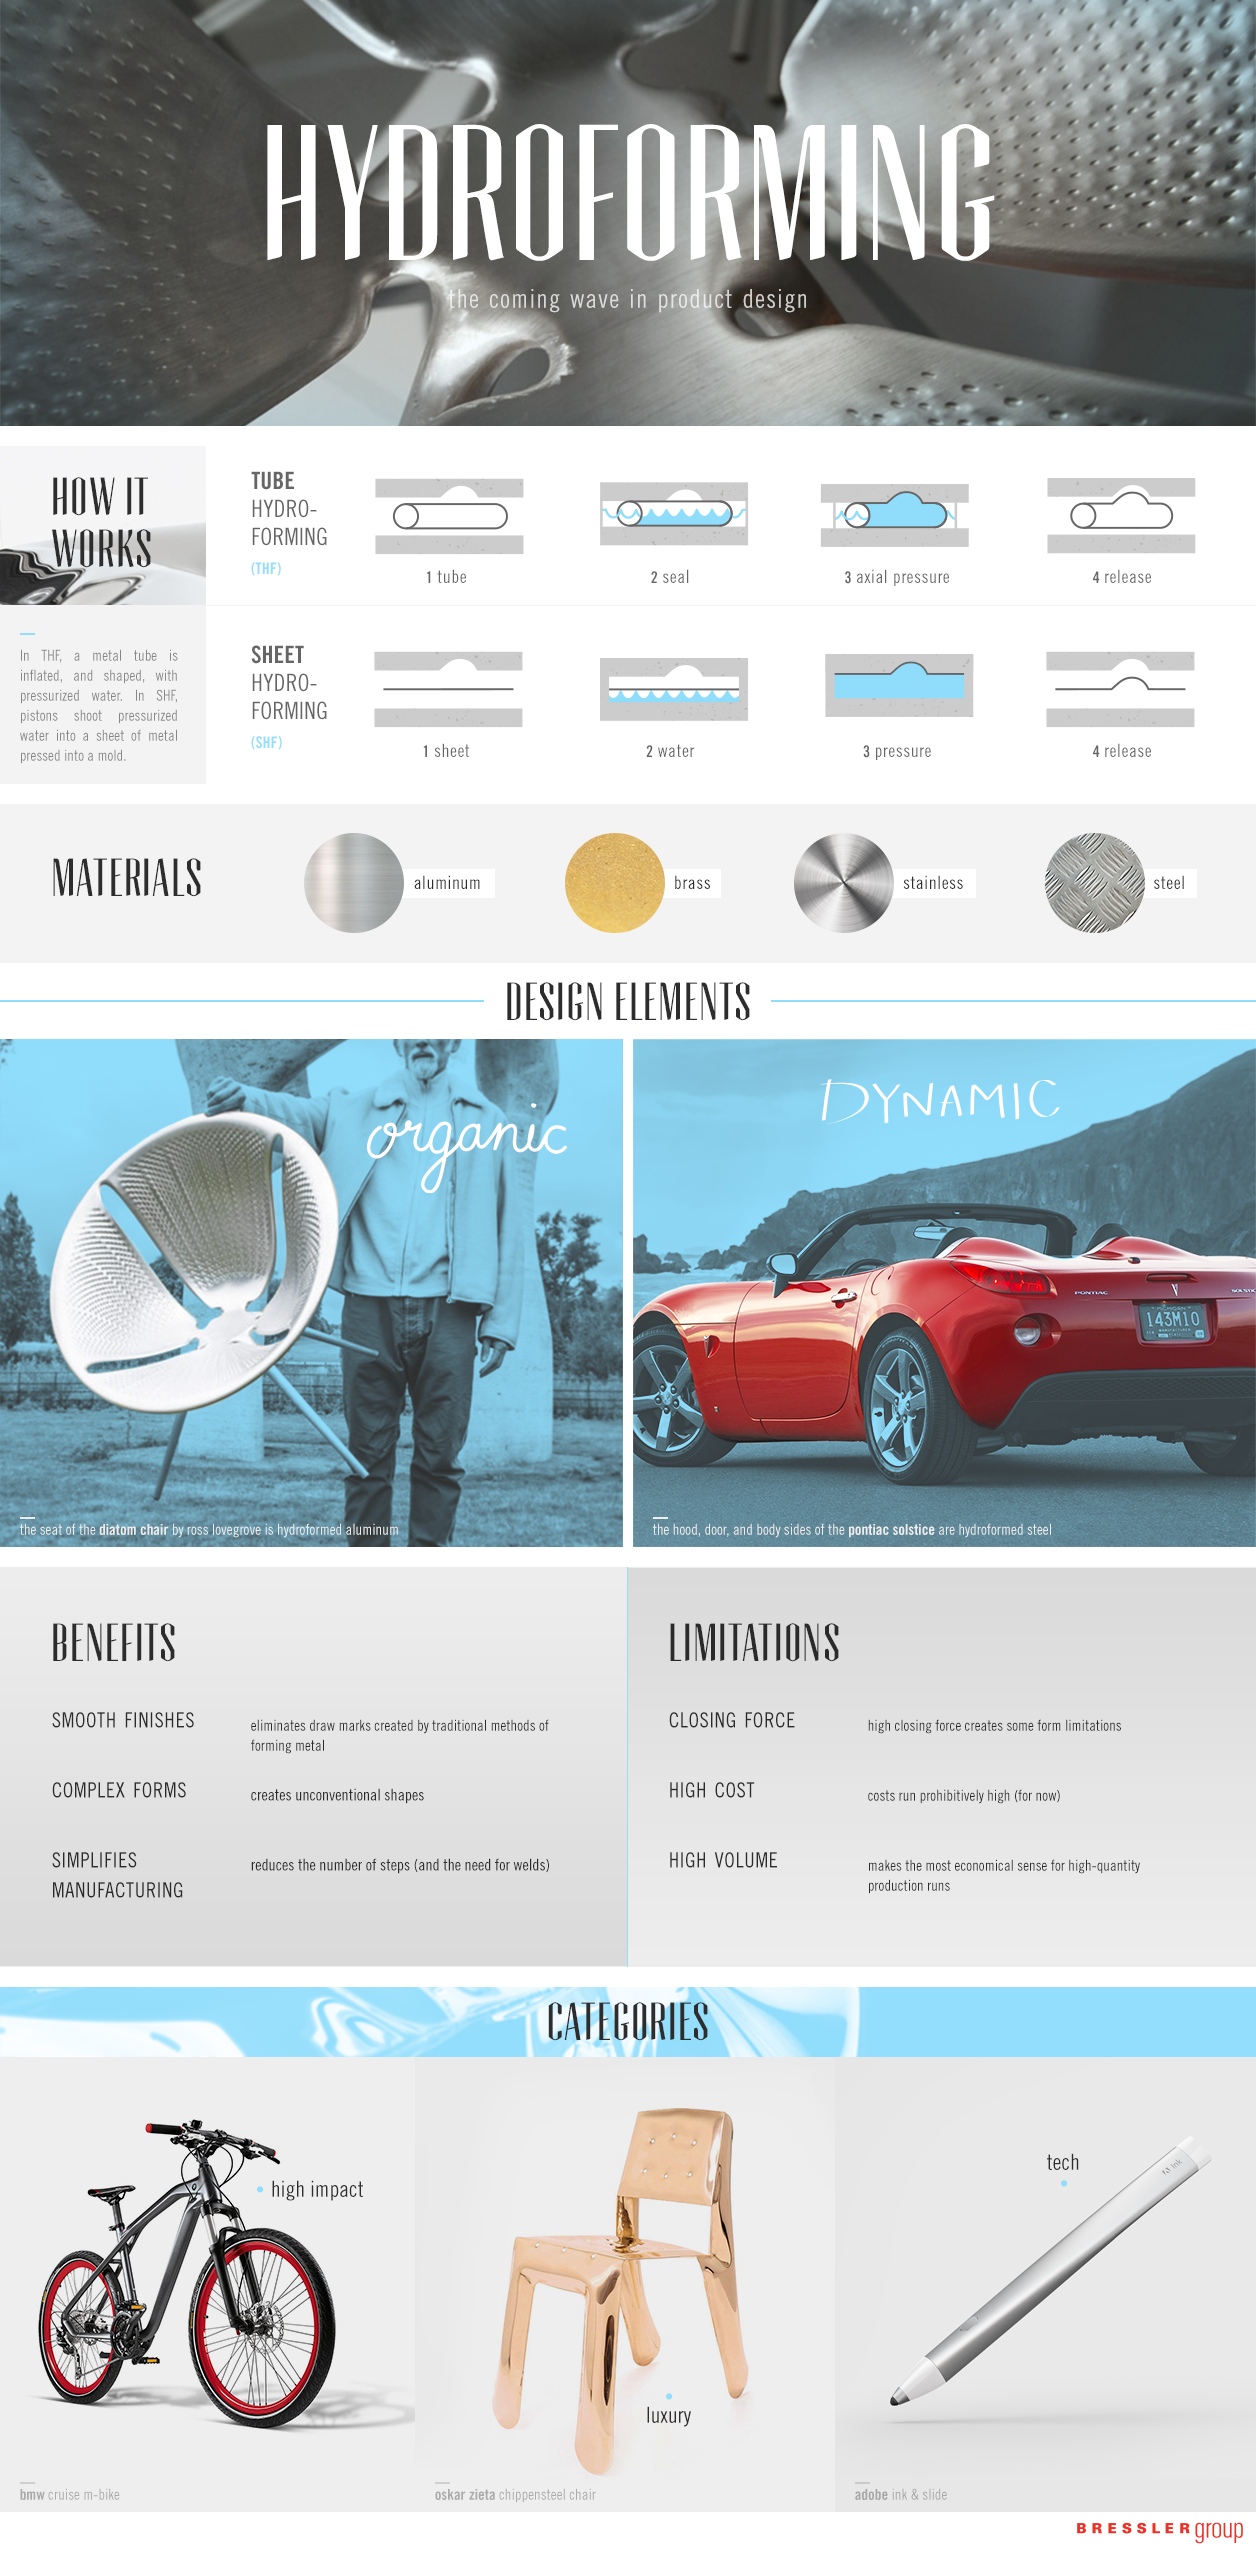 The Coming Wave In Product Design Hydroforming Infographic